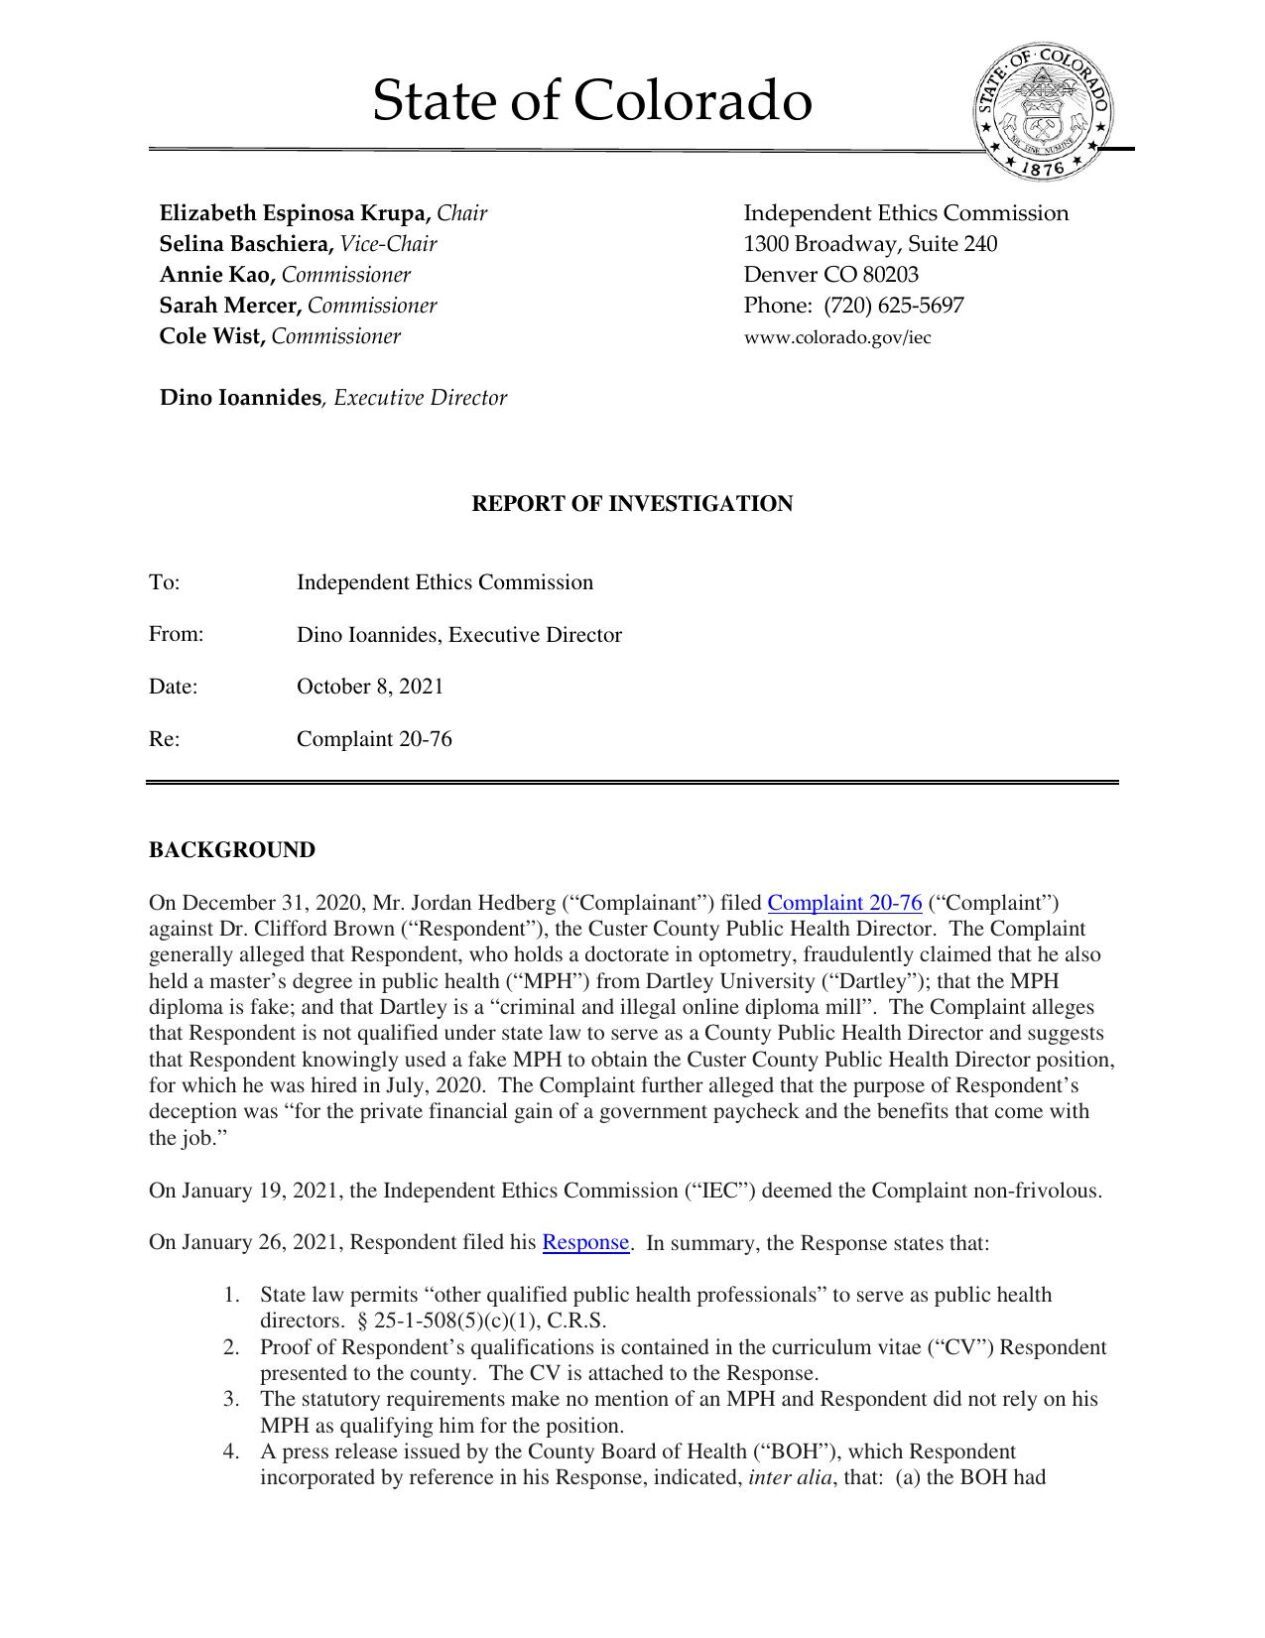 Ethics report on Clifford Brown of Custer County